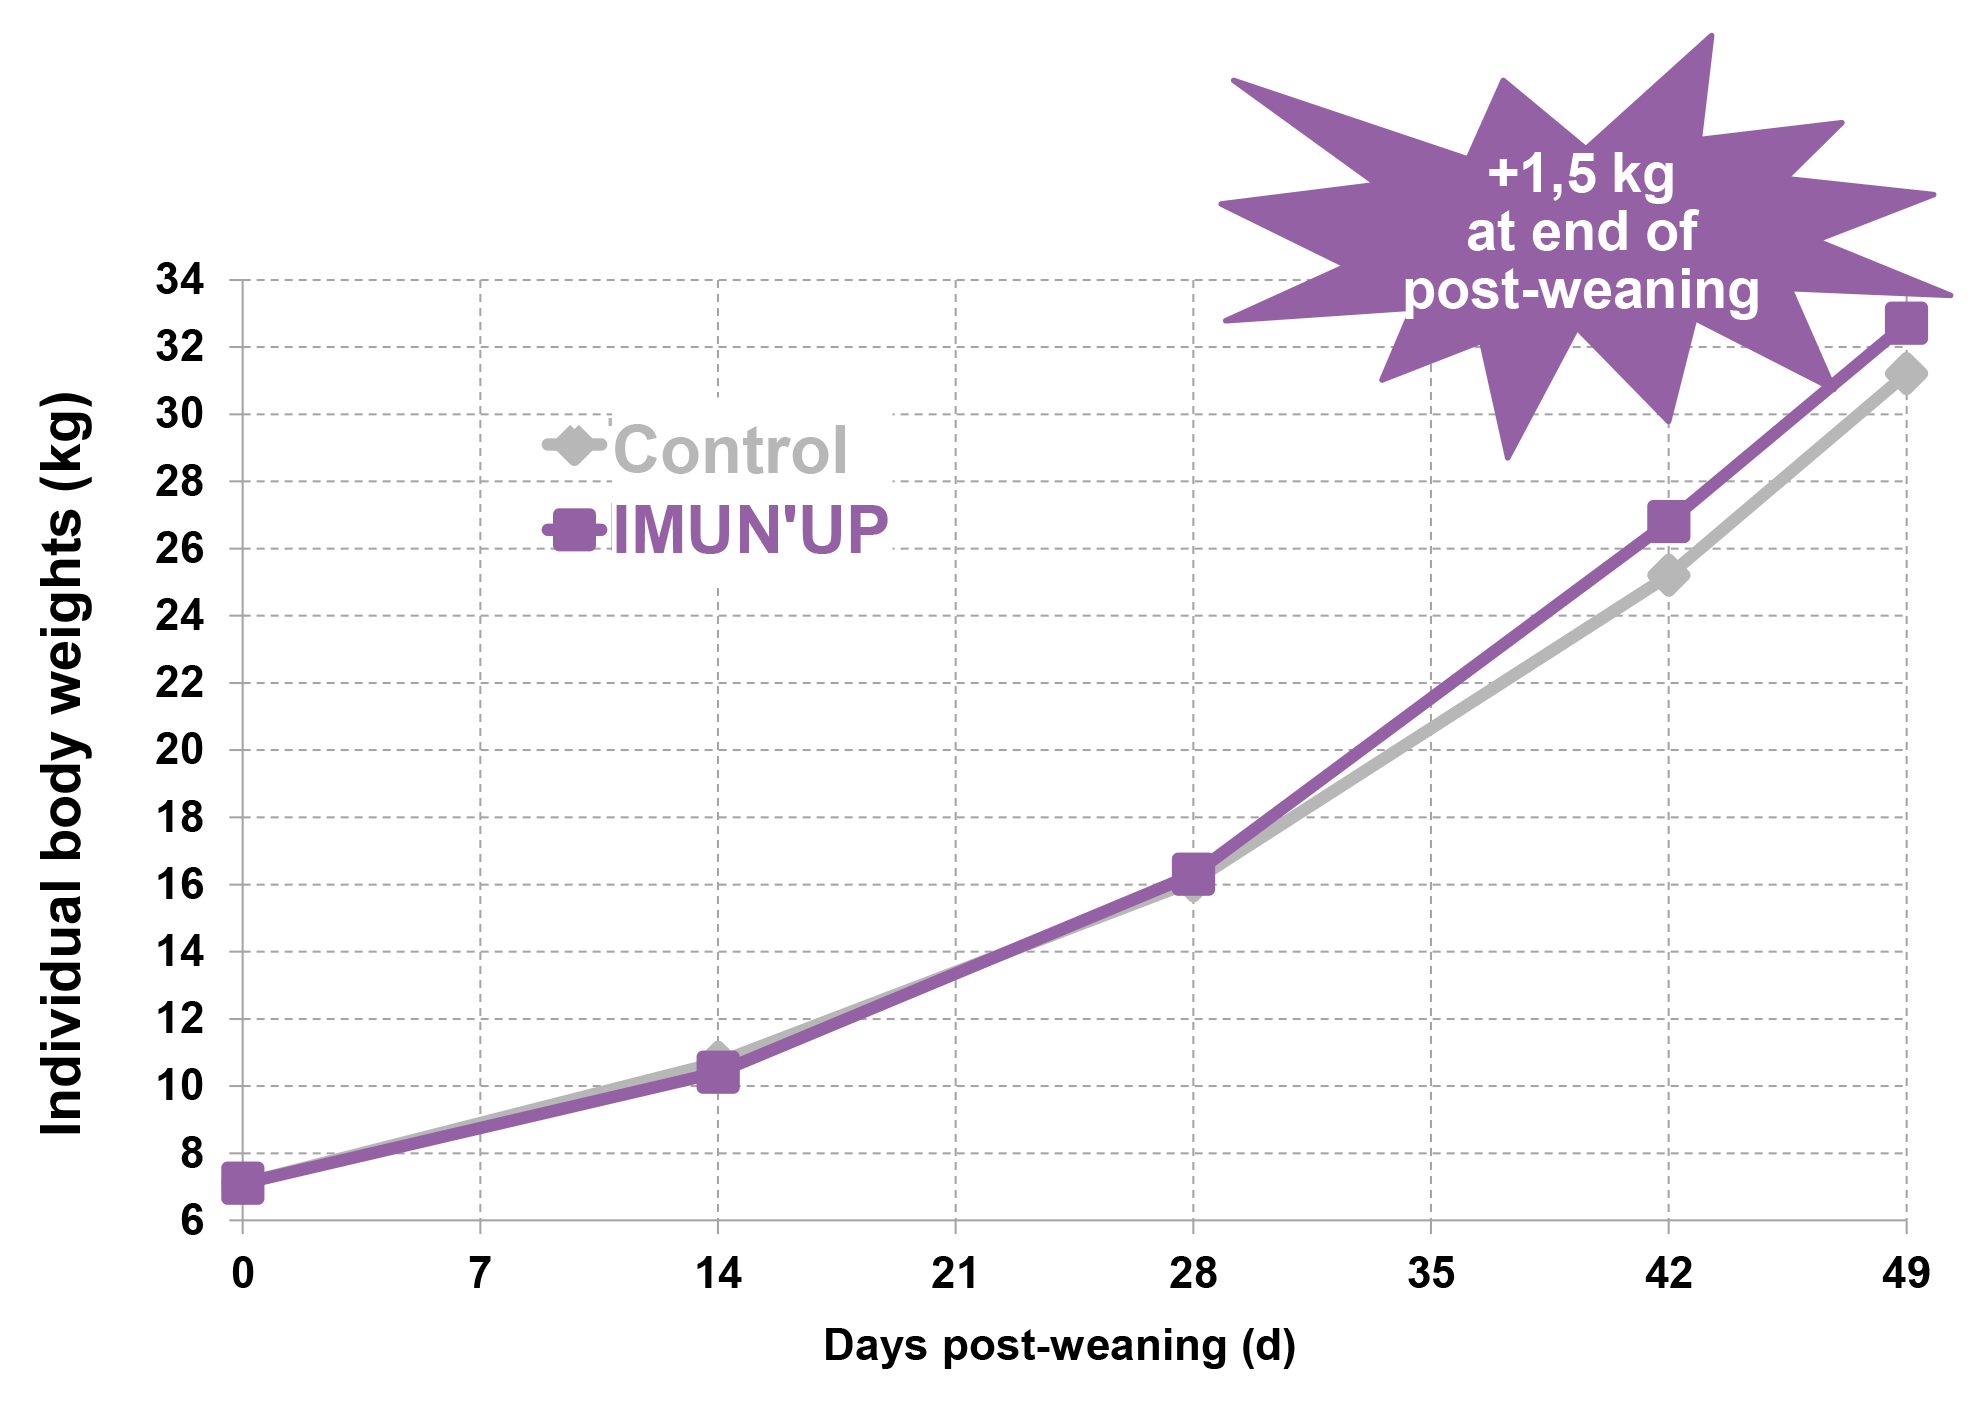 Imun up improve sows weight and piglet robustness